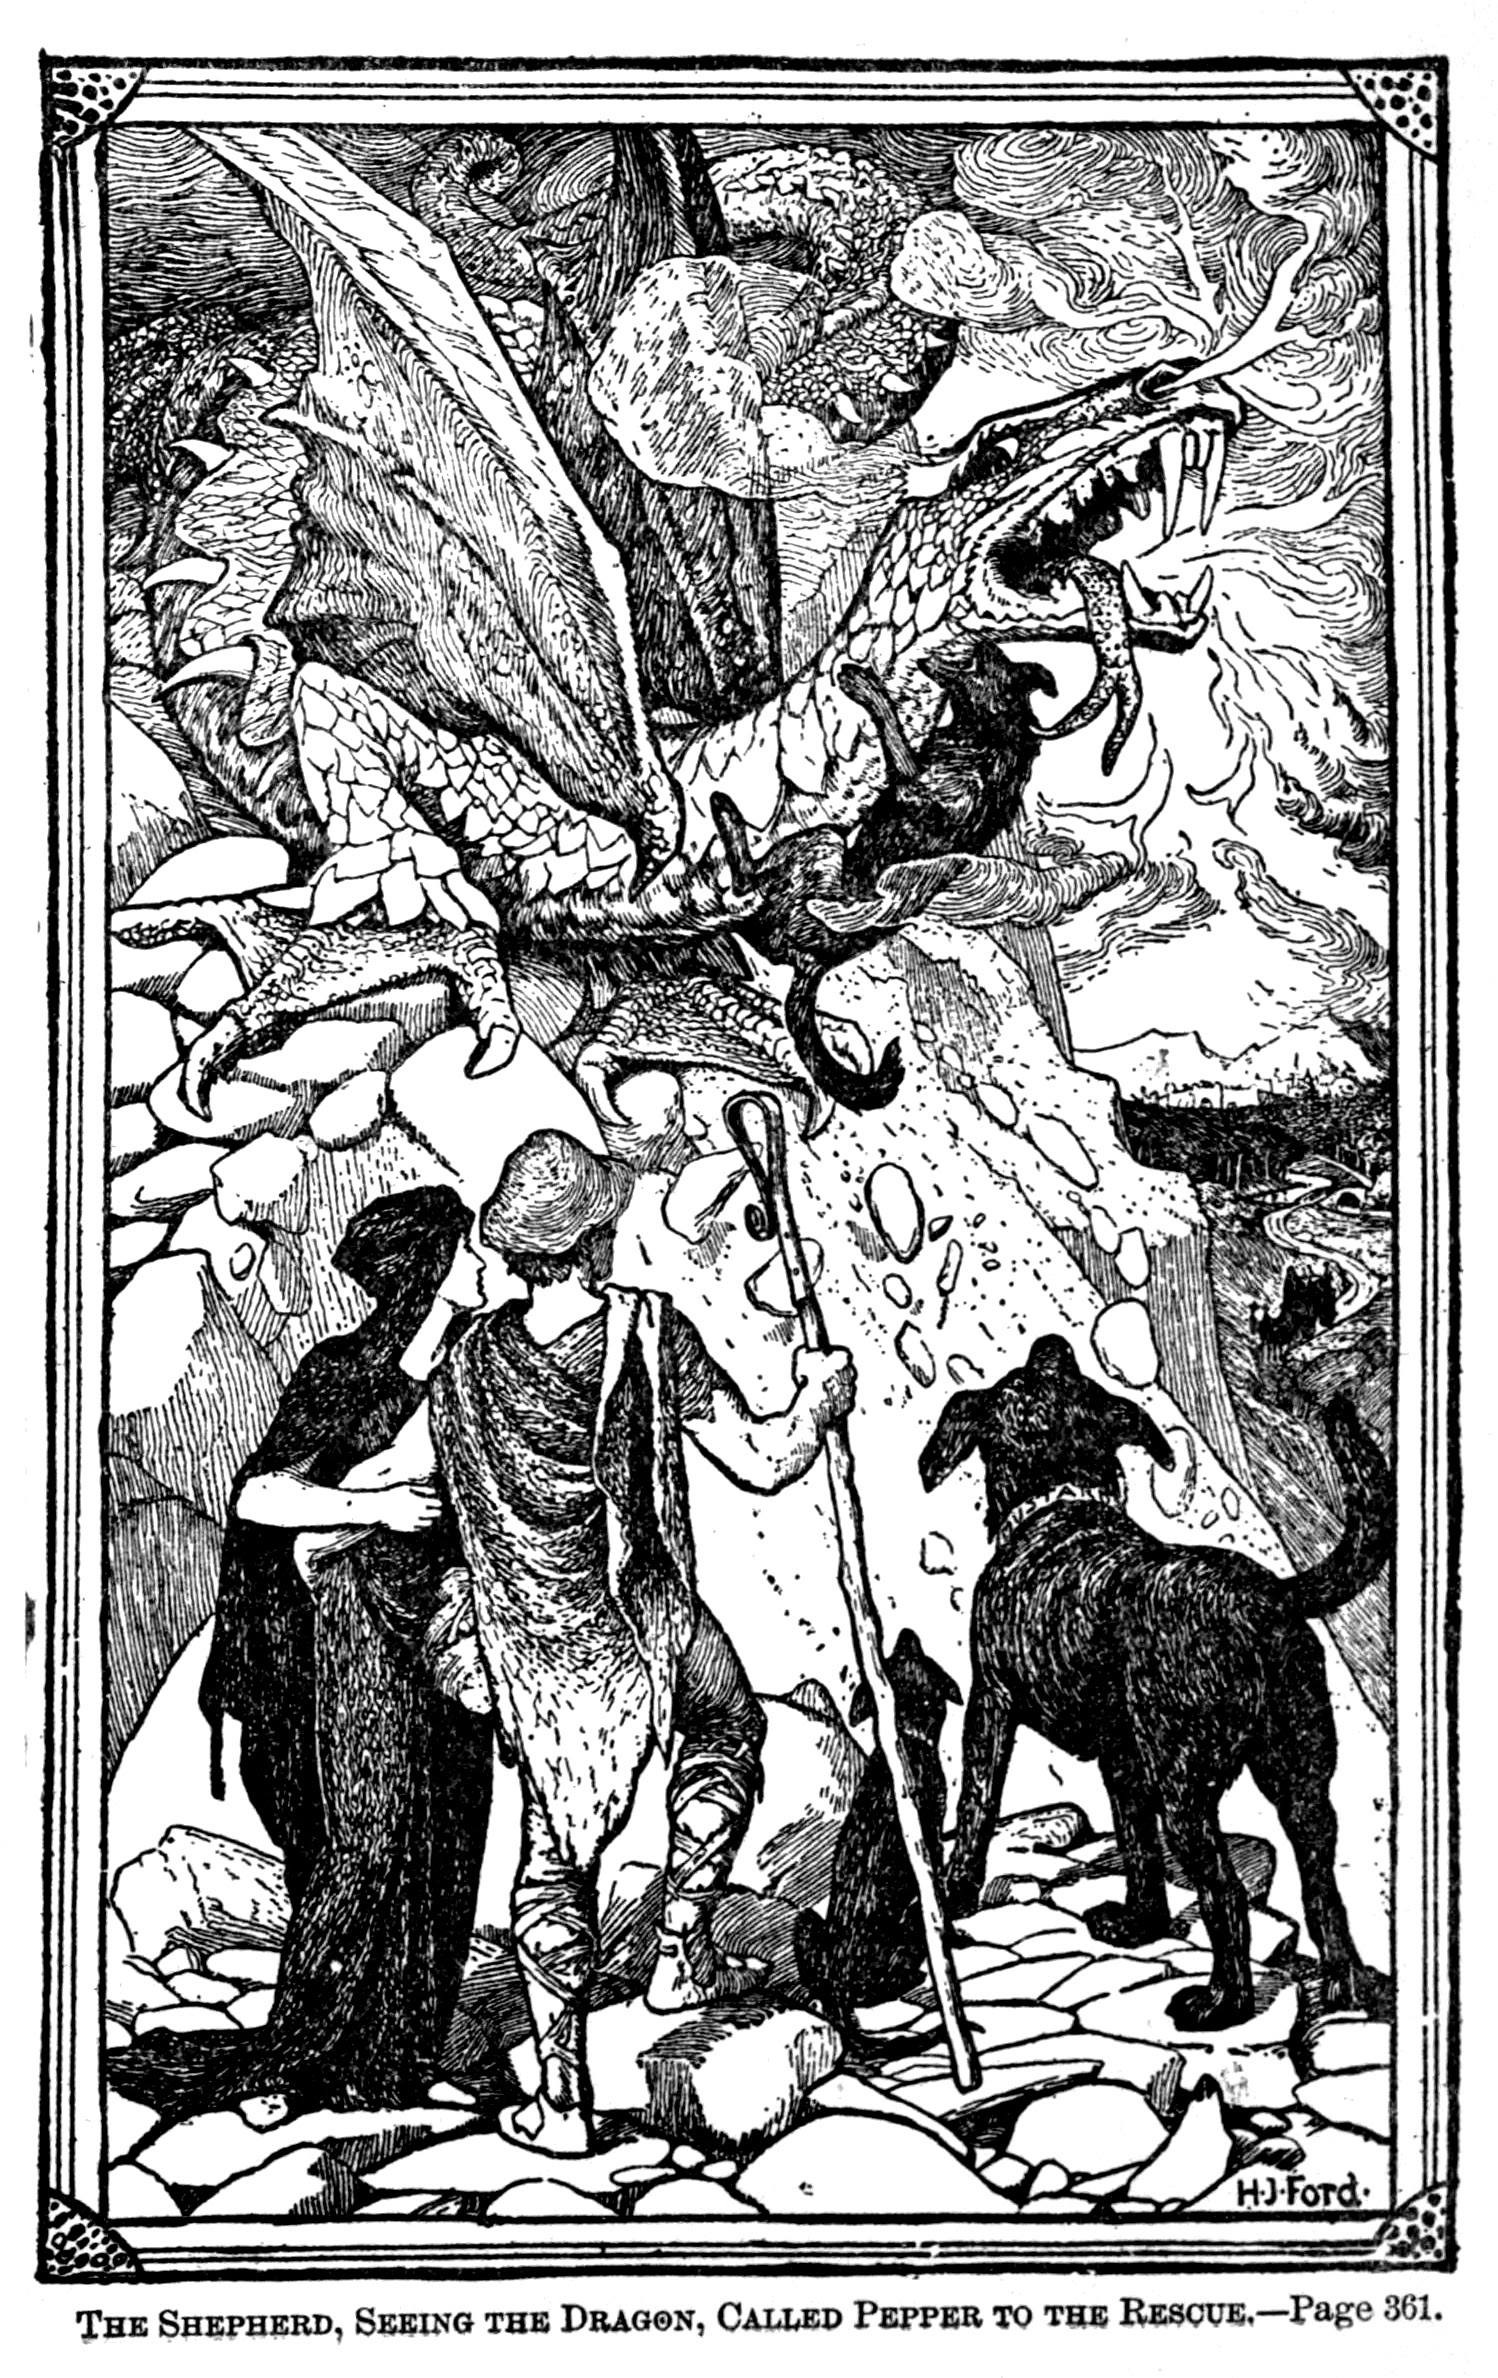 Henry Justice Ford - The green fairy book, edited by Andrew Lang, 1900 (illustration 9)